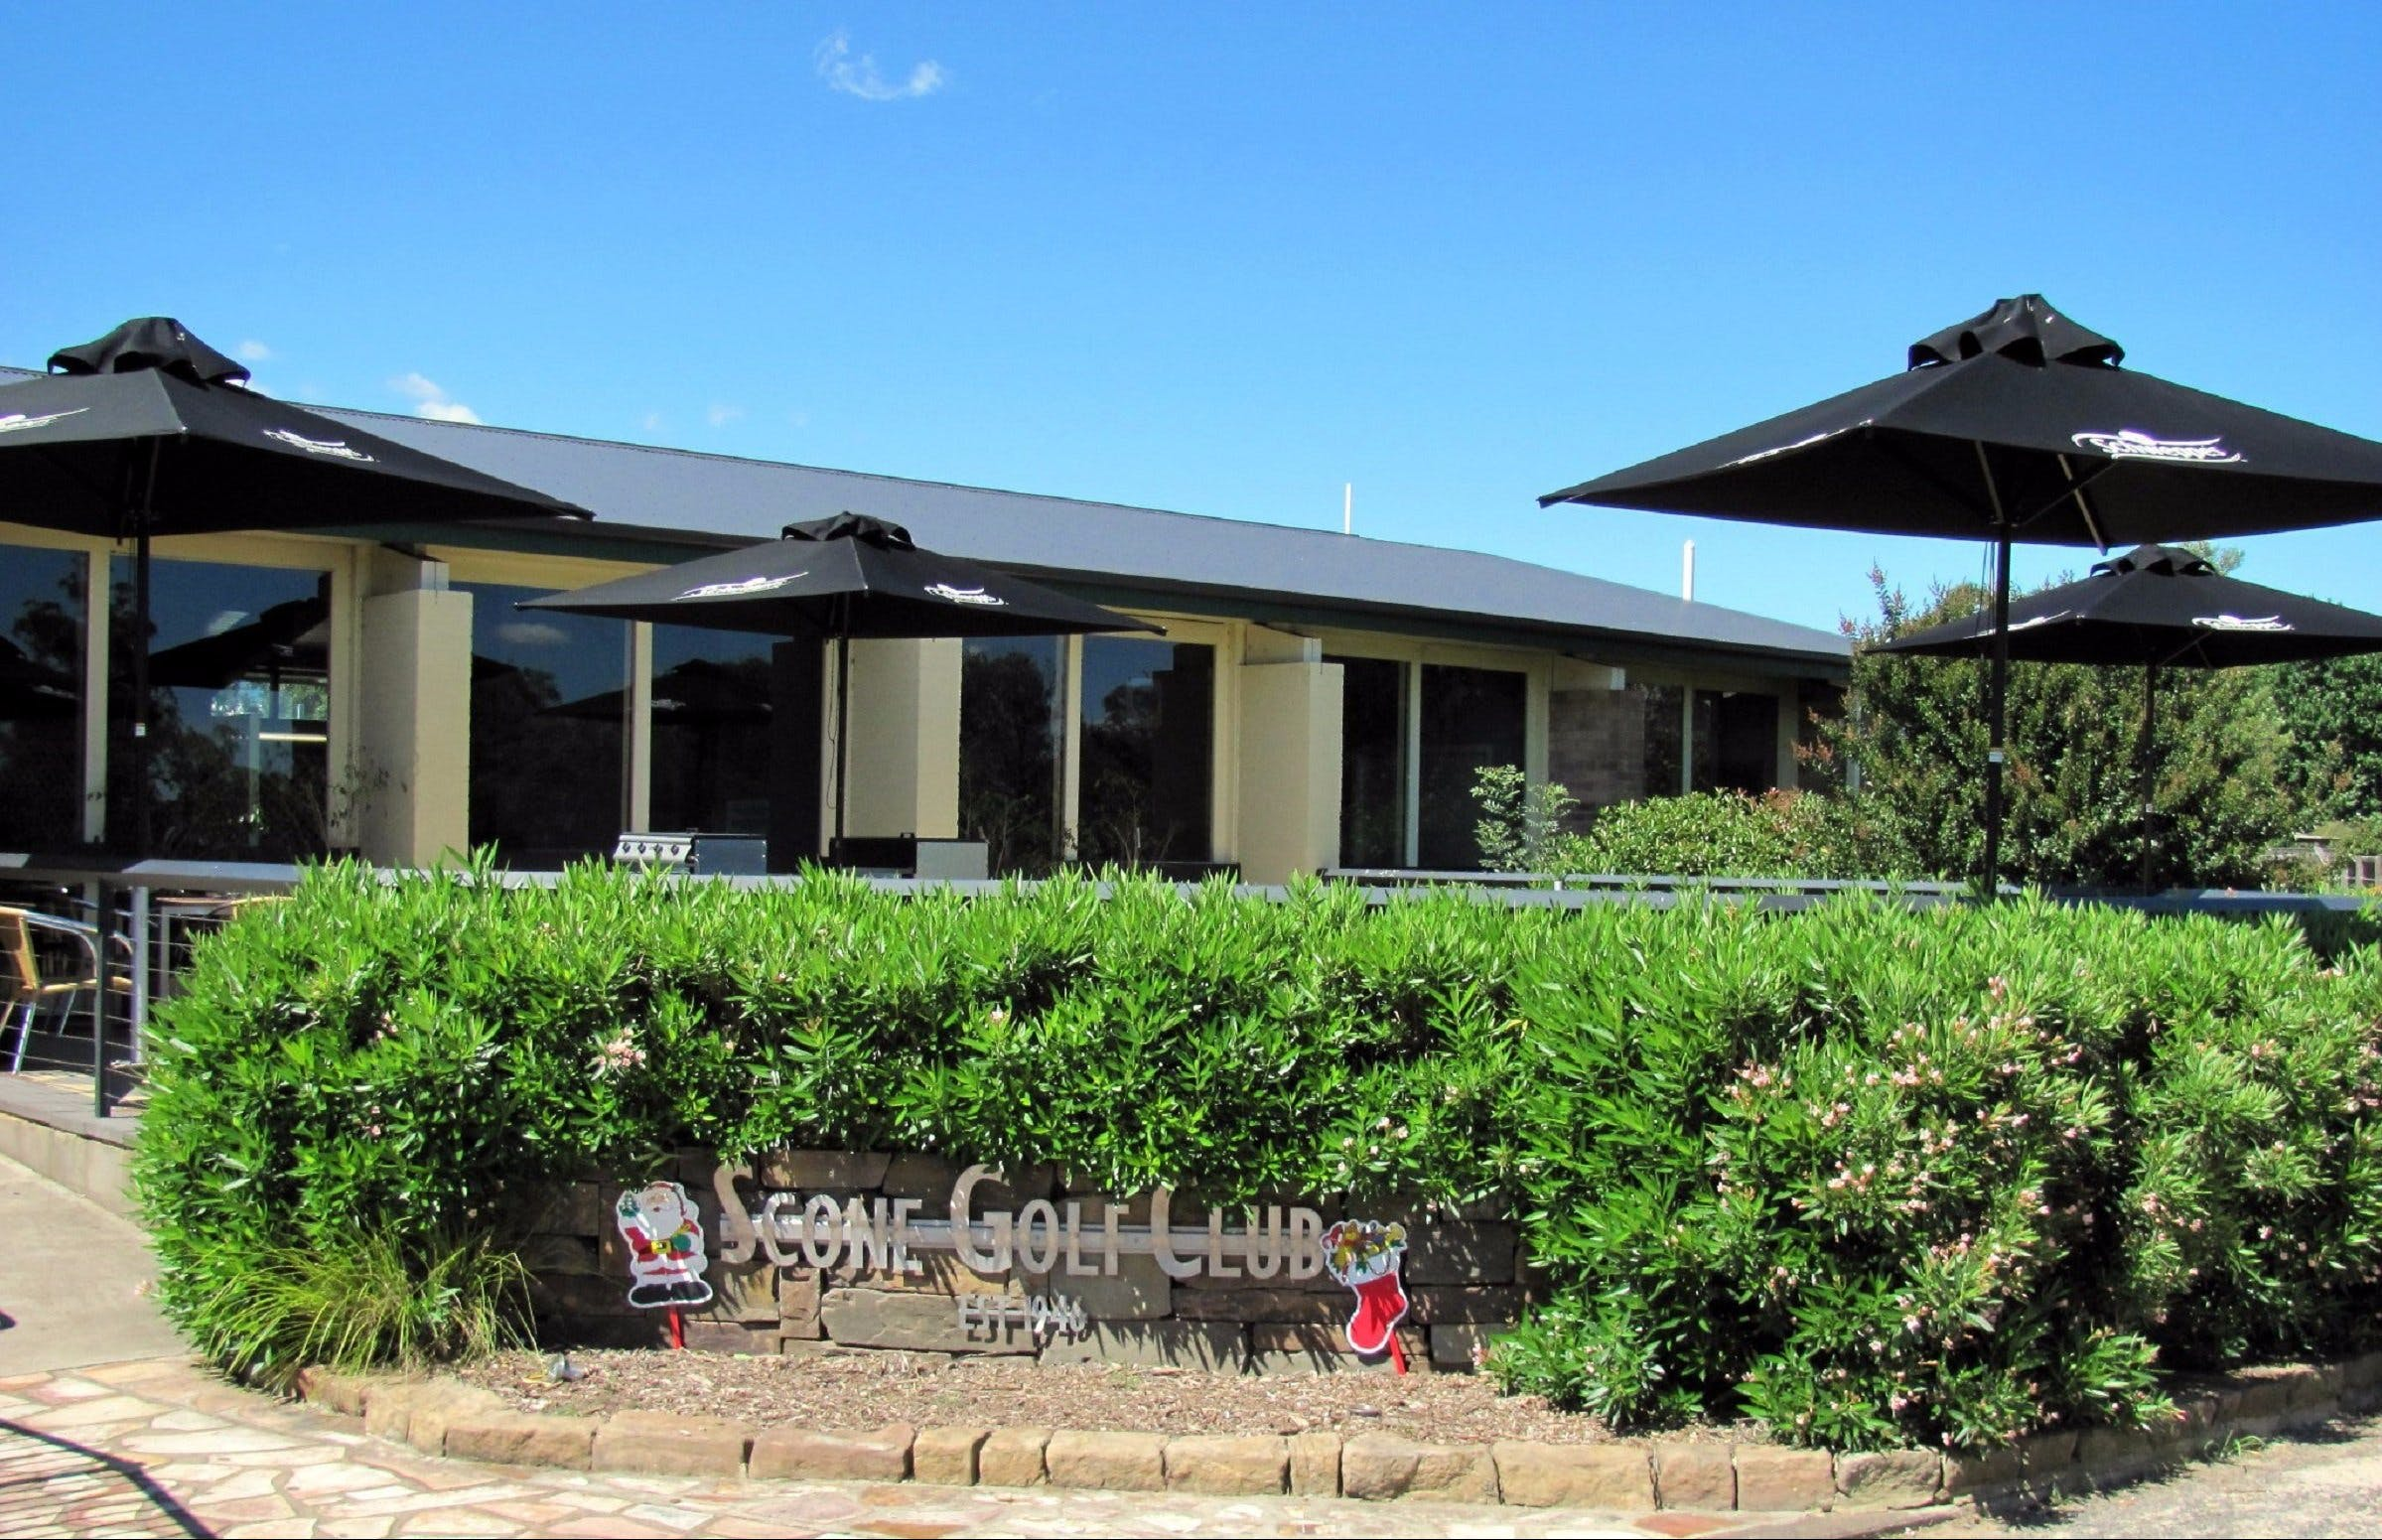 Scone Golf Club - Accommodation Mt Buller